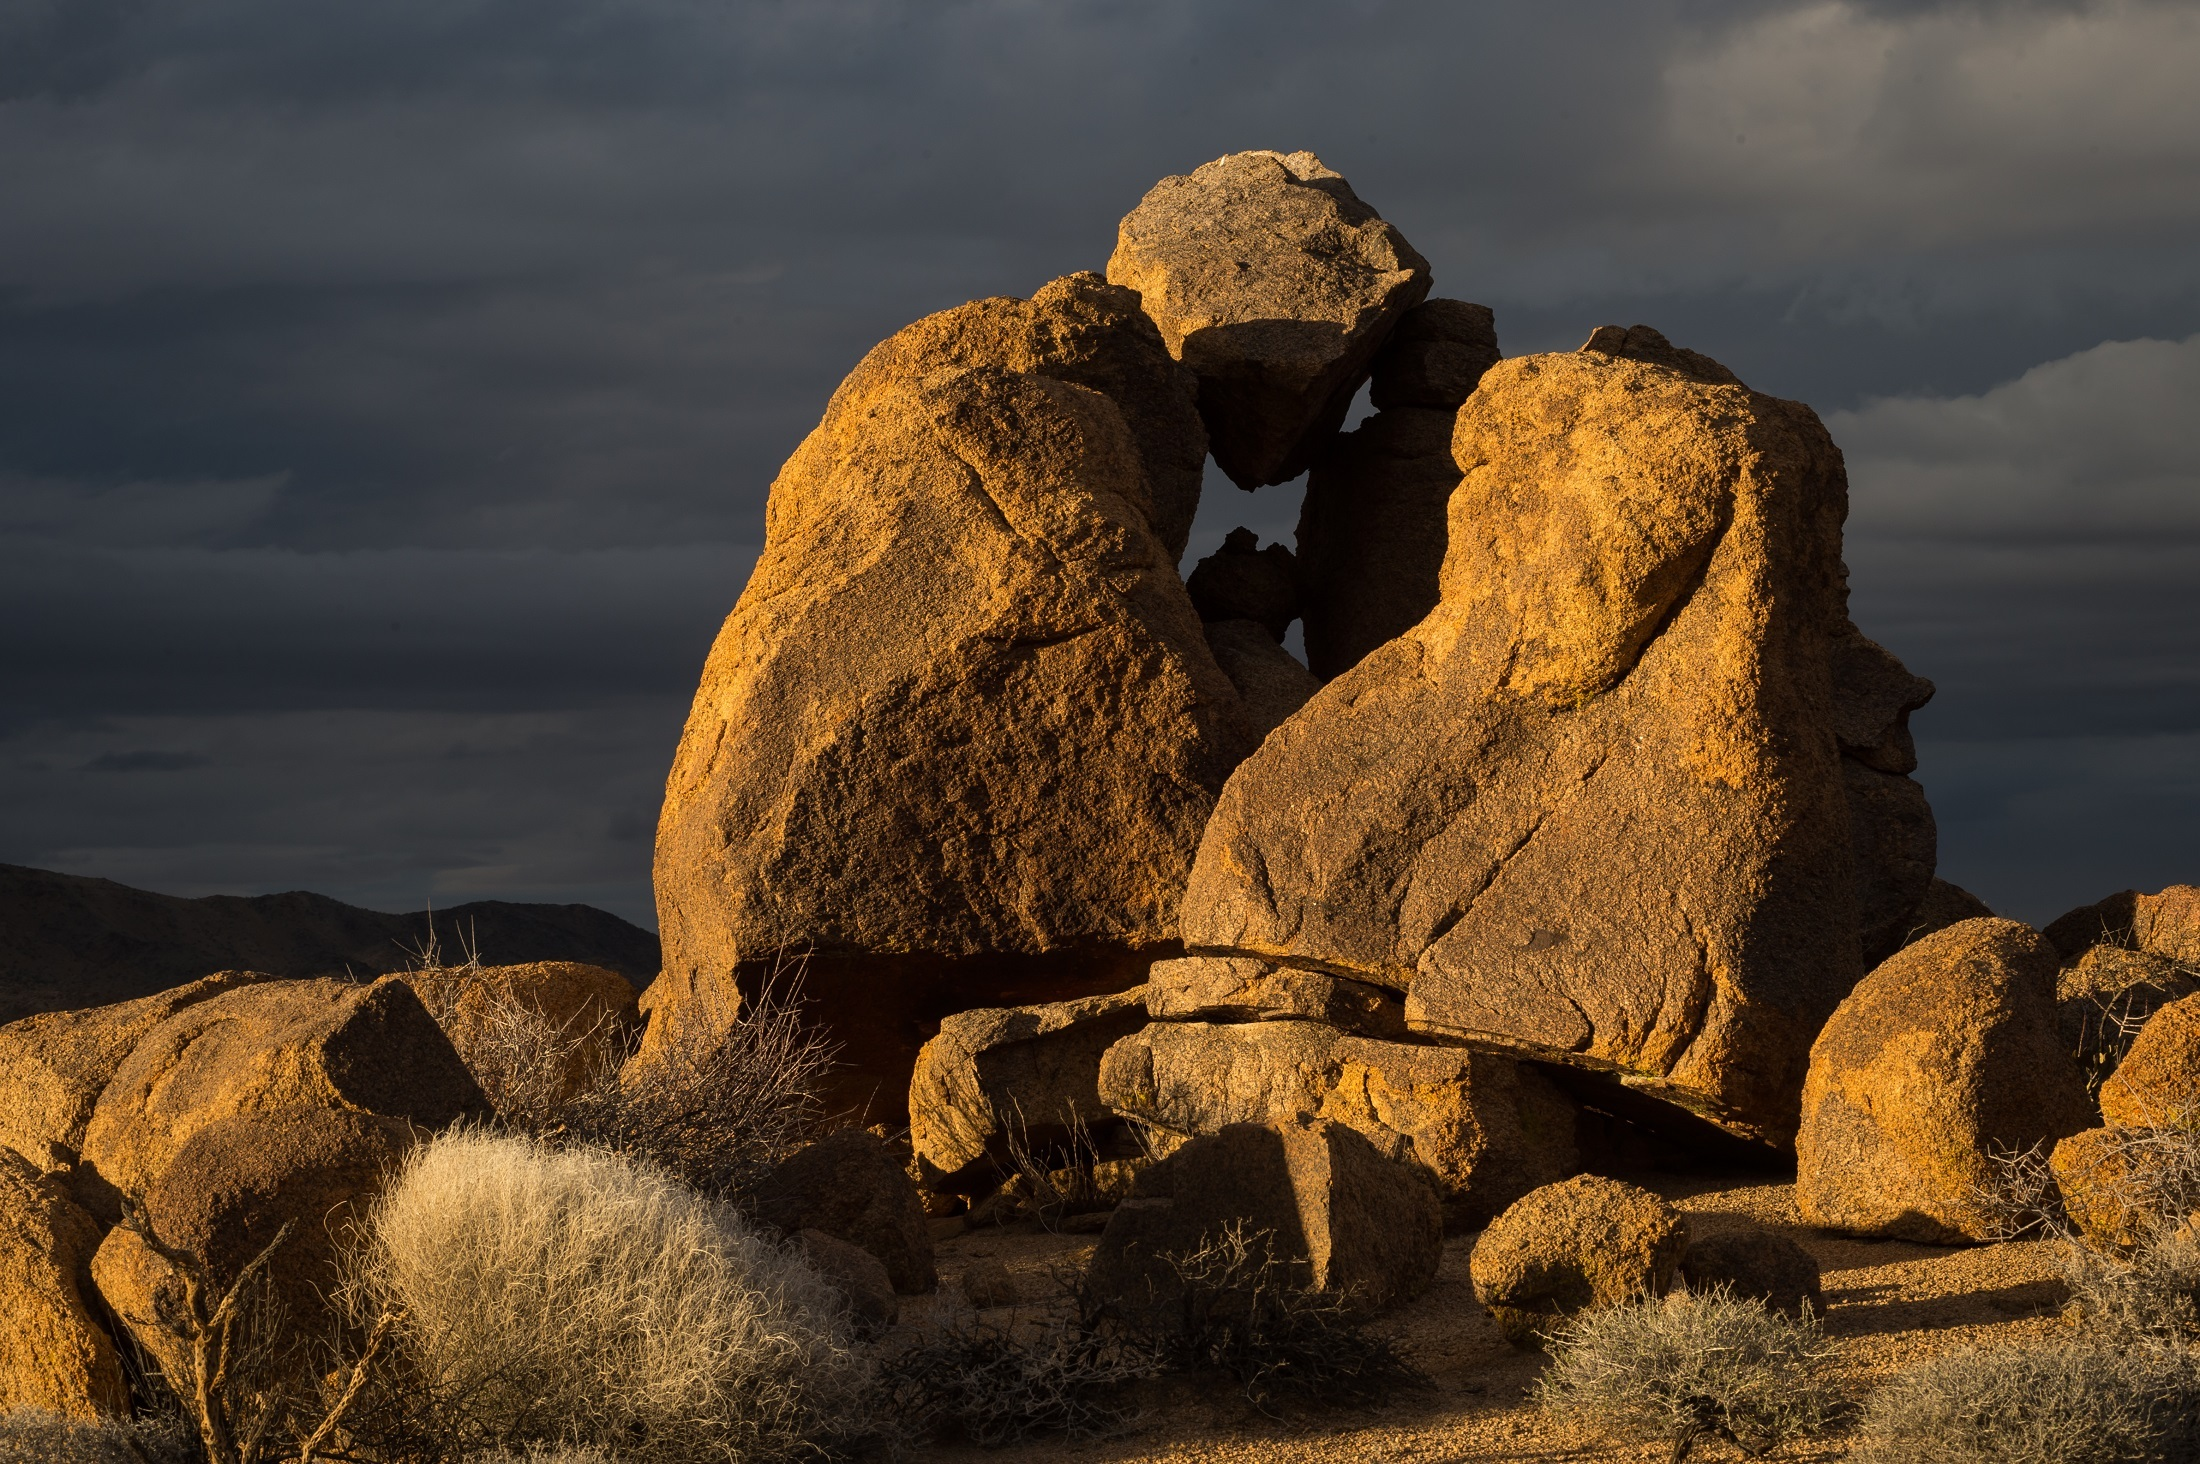 Rock formation photo